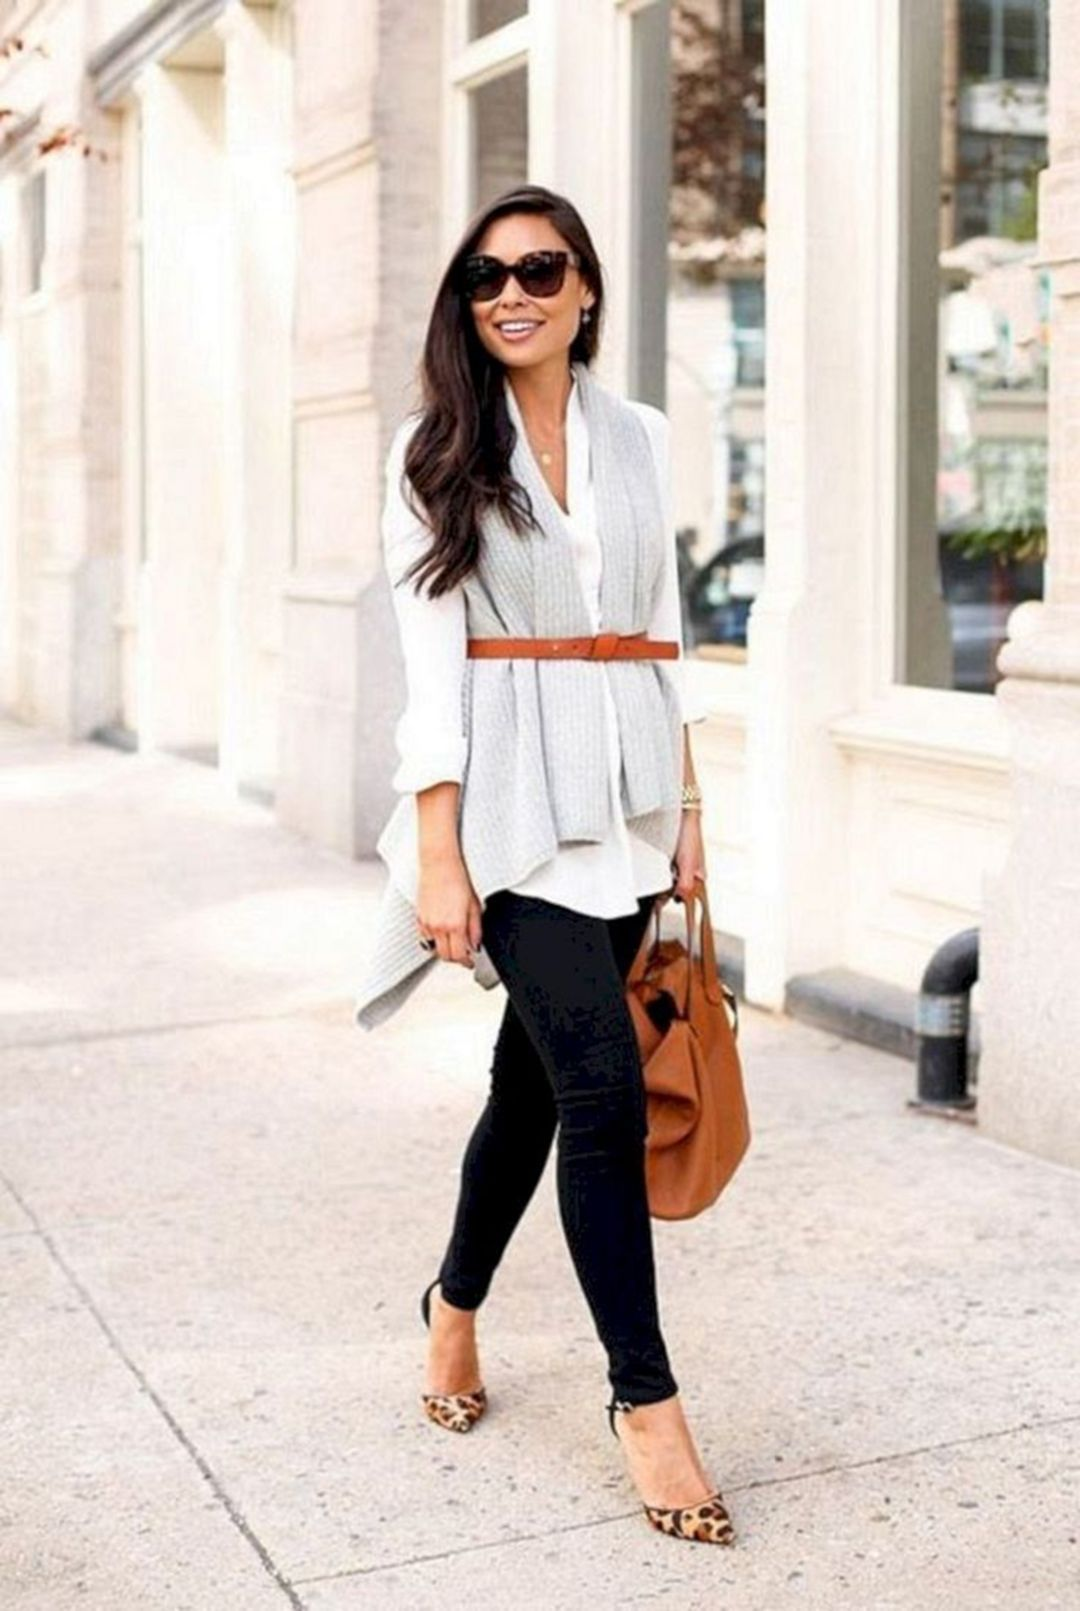 Top 5 Smart Casual Outfits Ideas for Spring - Fashions Nowadays in